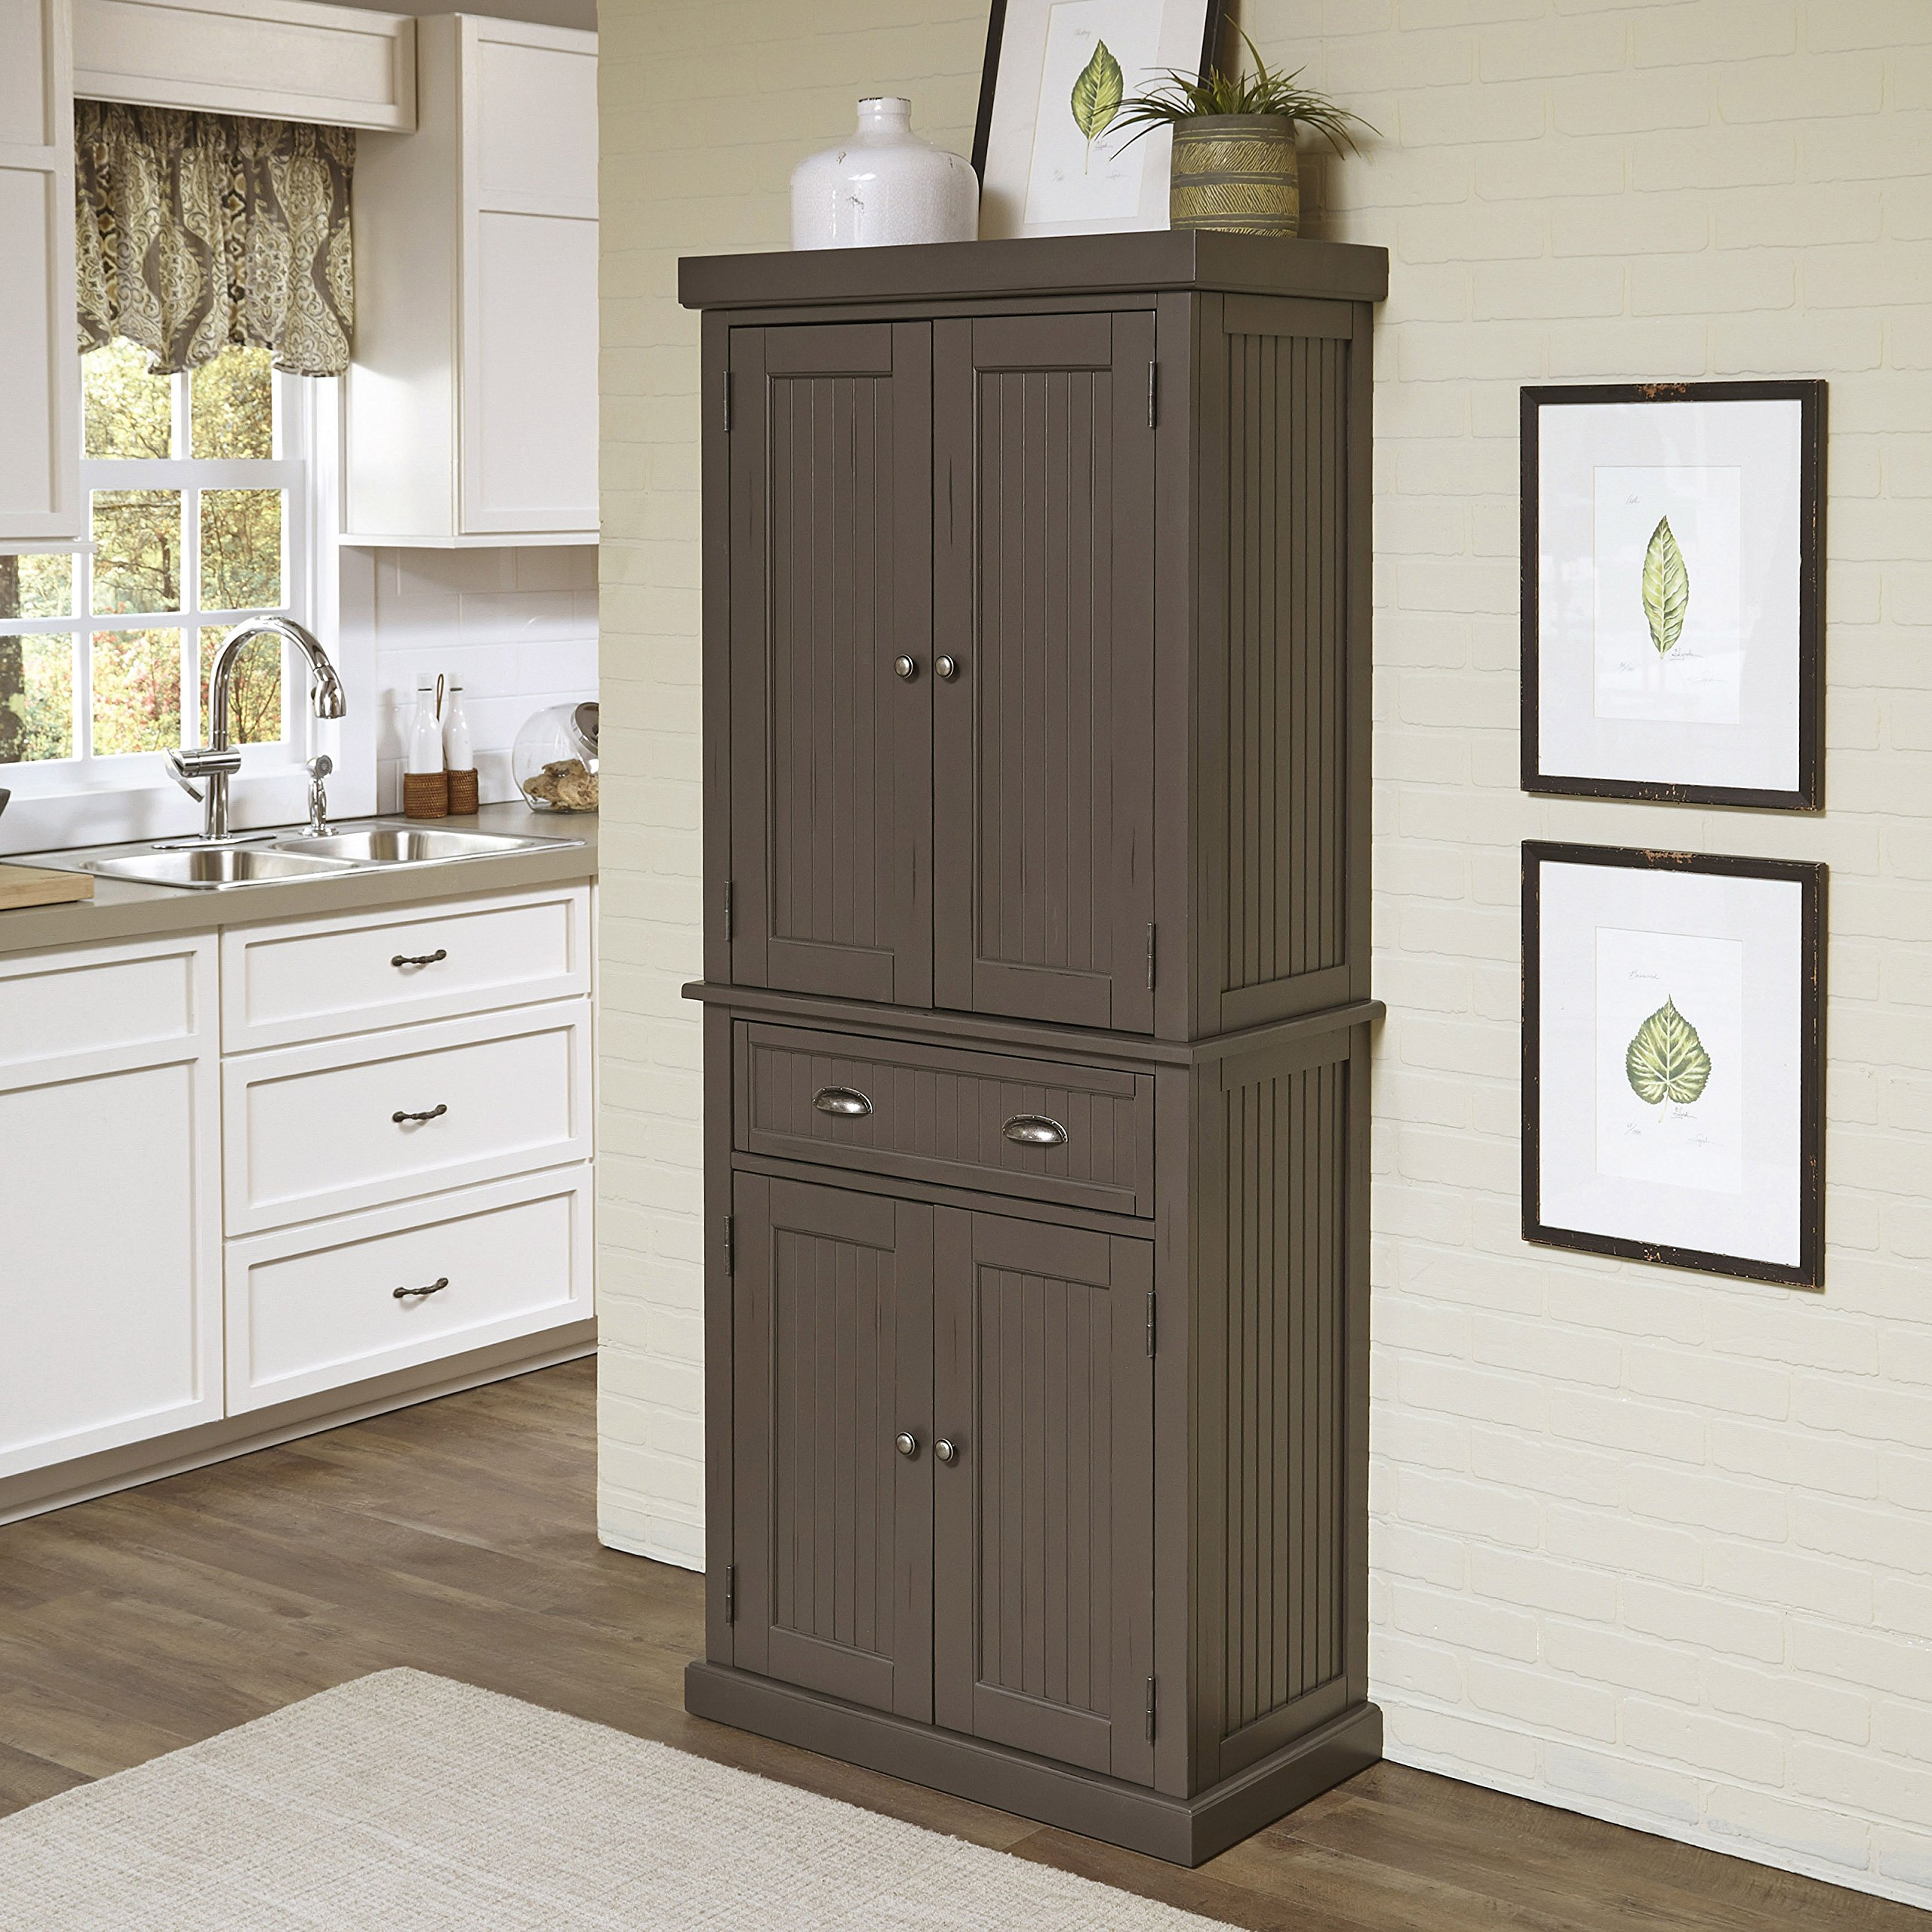 Home Styles Stockbridge Kitchen Pantry by Home Styles (Image #2)